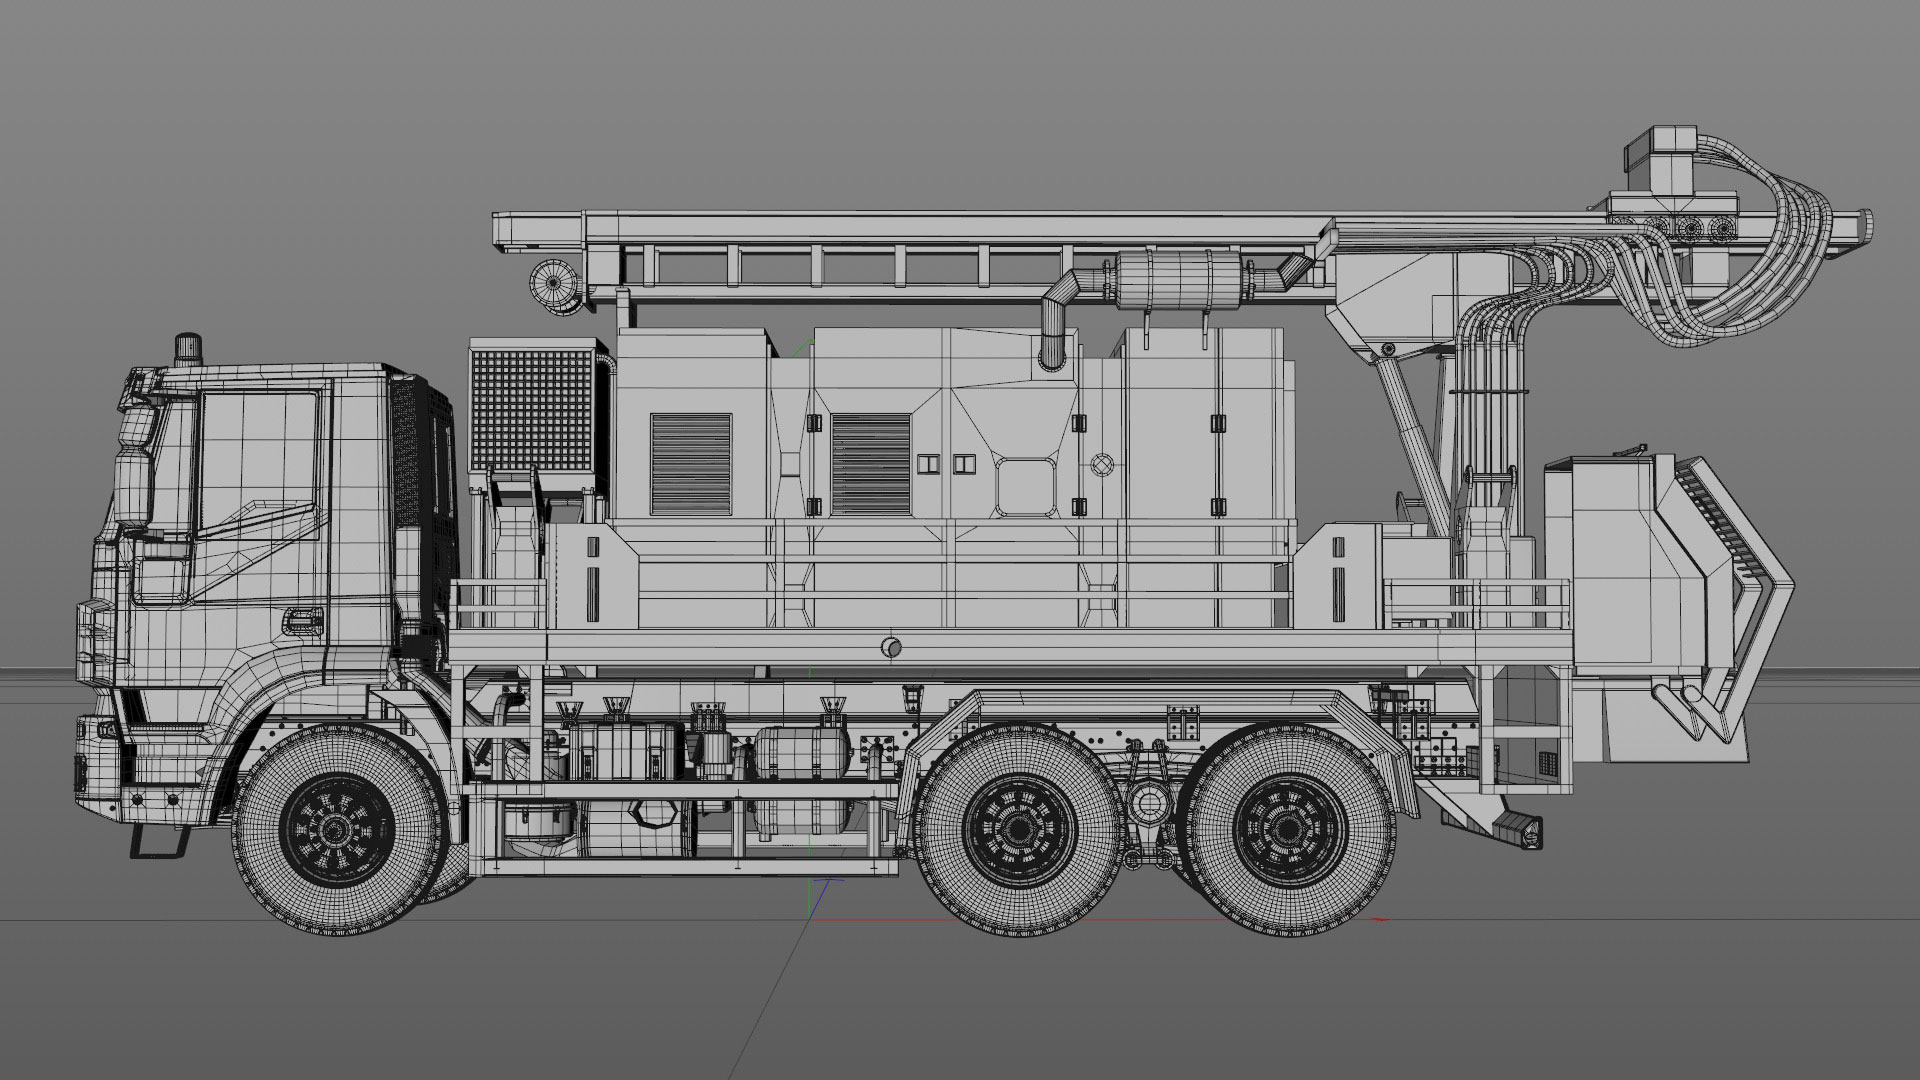 Projects_CharityWater_process_Drilling_Rig_model_04_C4Dviewport